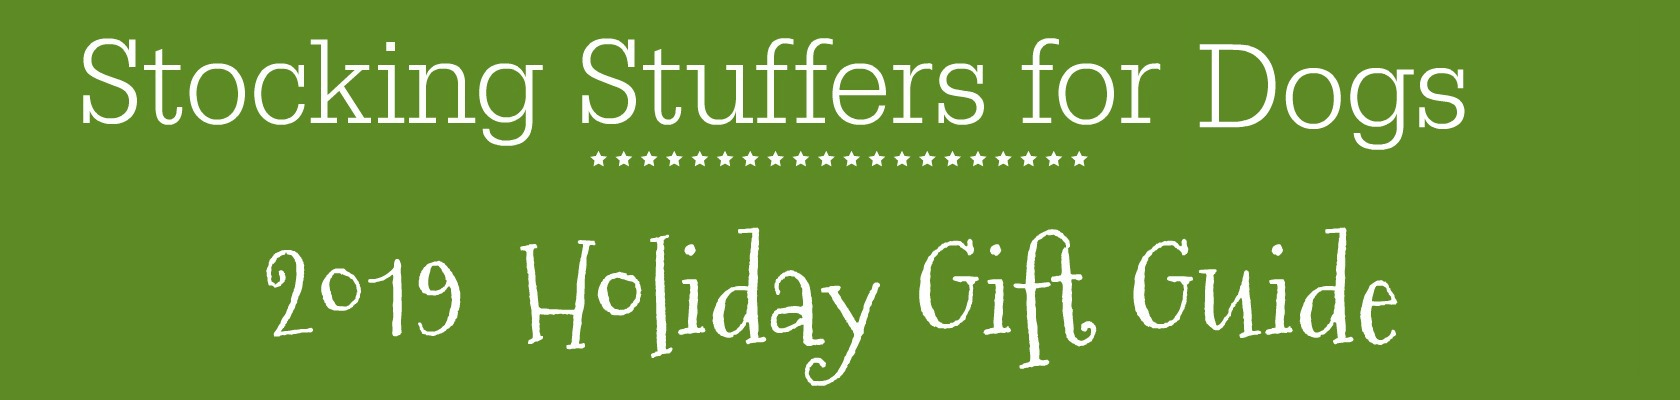 stocking stuffers for dogs